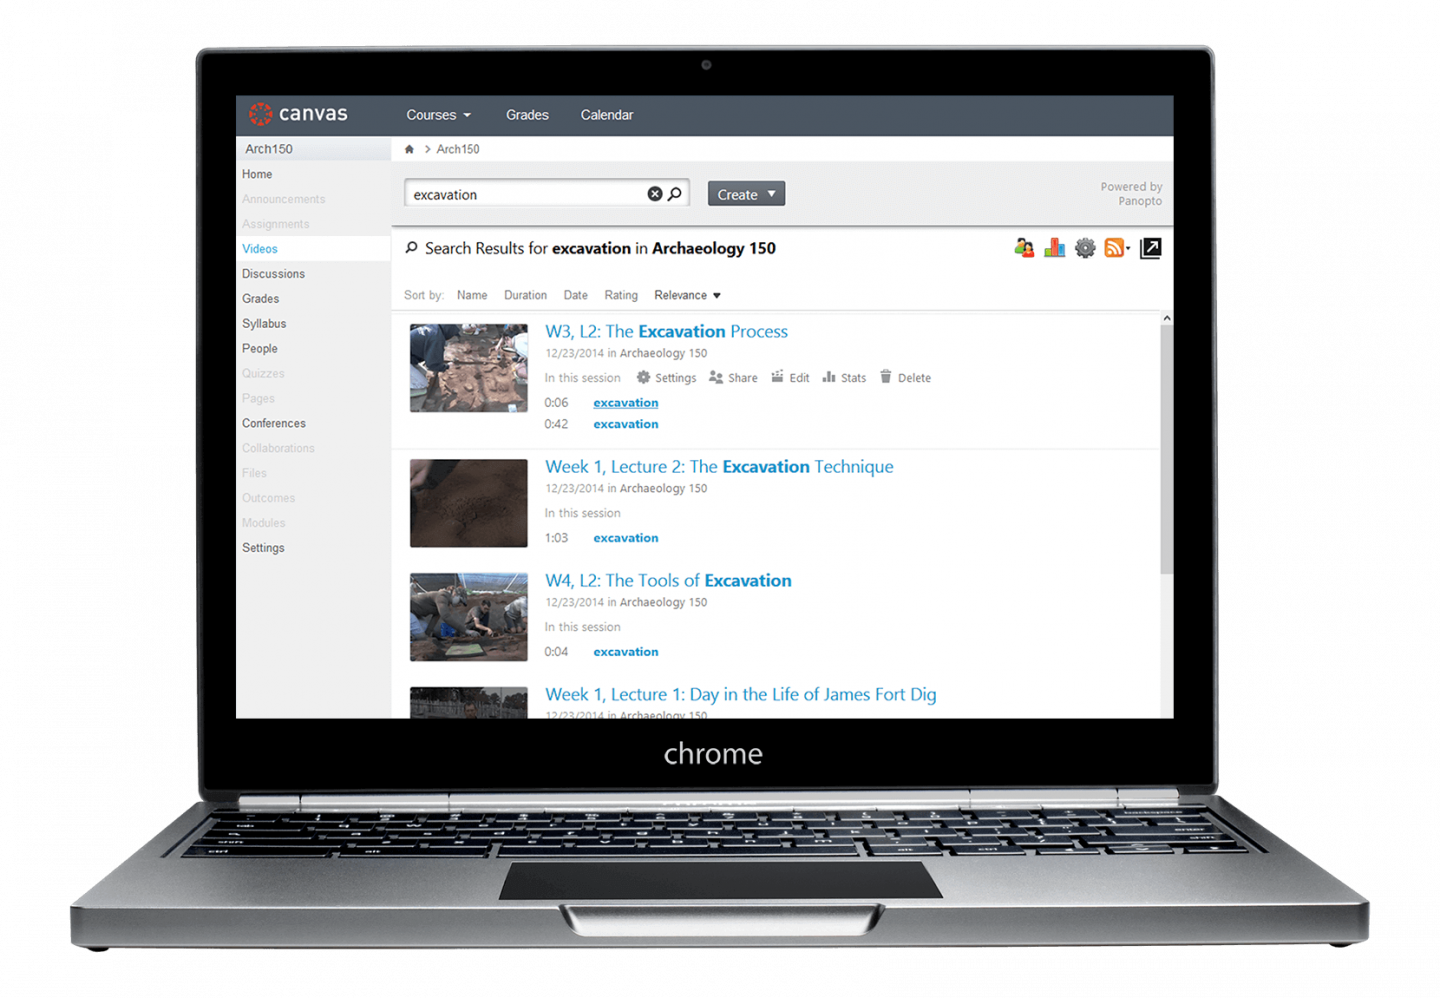 With a keyword search, university students can navigate to relevant content within Panopto's video management system